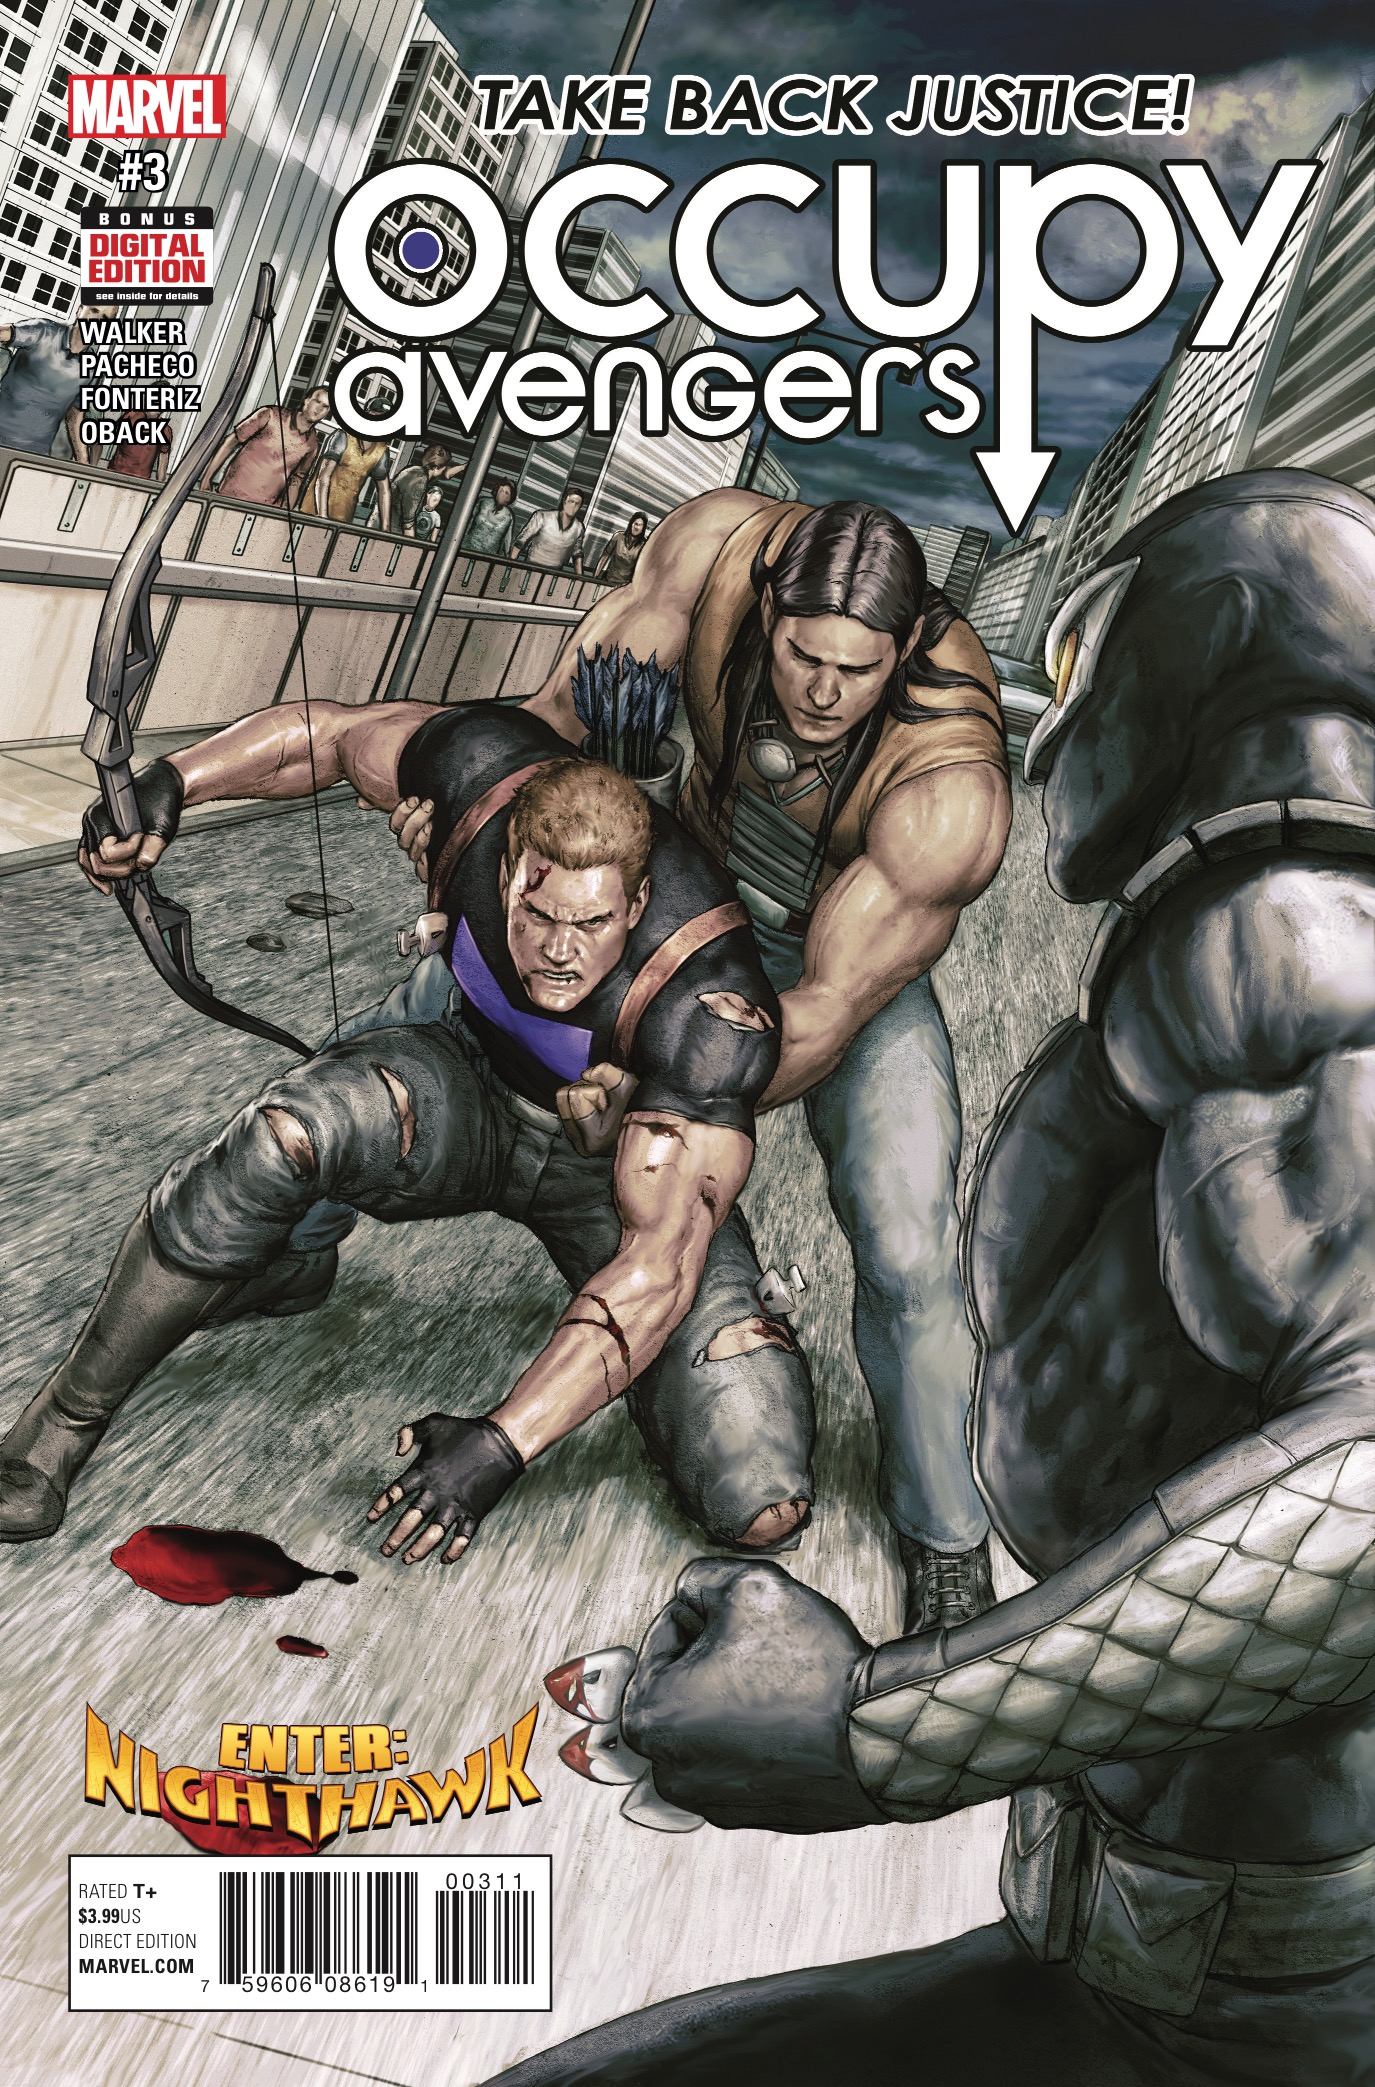 Marvel Preview: Occupy Avengers #3